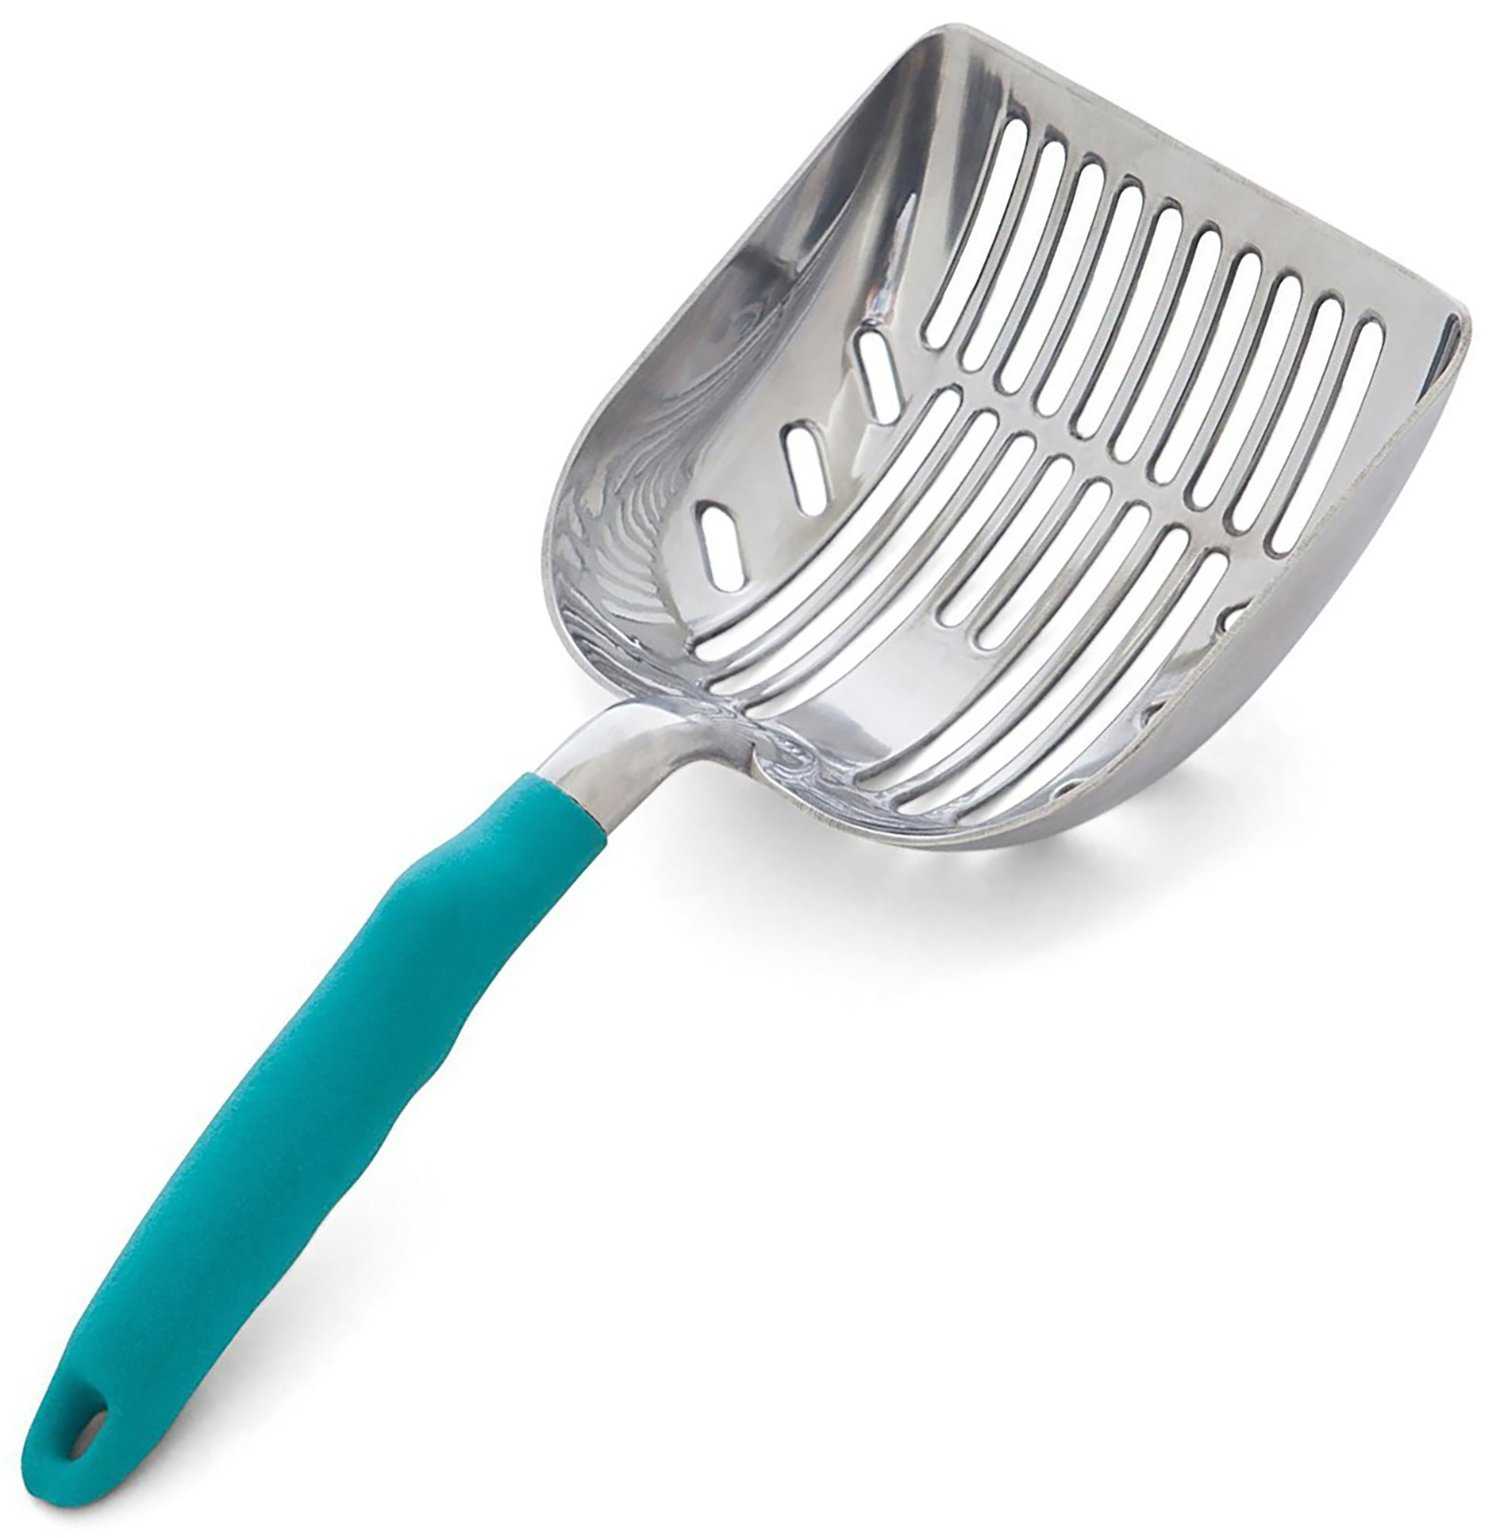 DuraScoop Jumbo Cat Litter Scoop, All Metal End-to-End with Solid Core, Sifter with Deep Shovel, Multi-Cat Tested Accept No Substitute for the Original (colors may vary) by DuraScoop